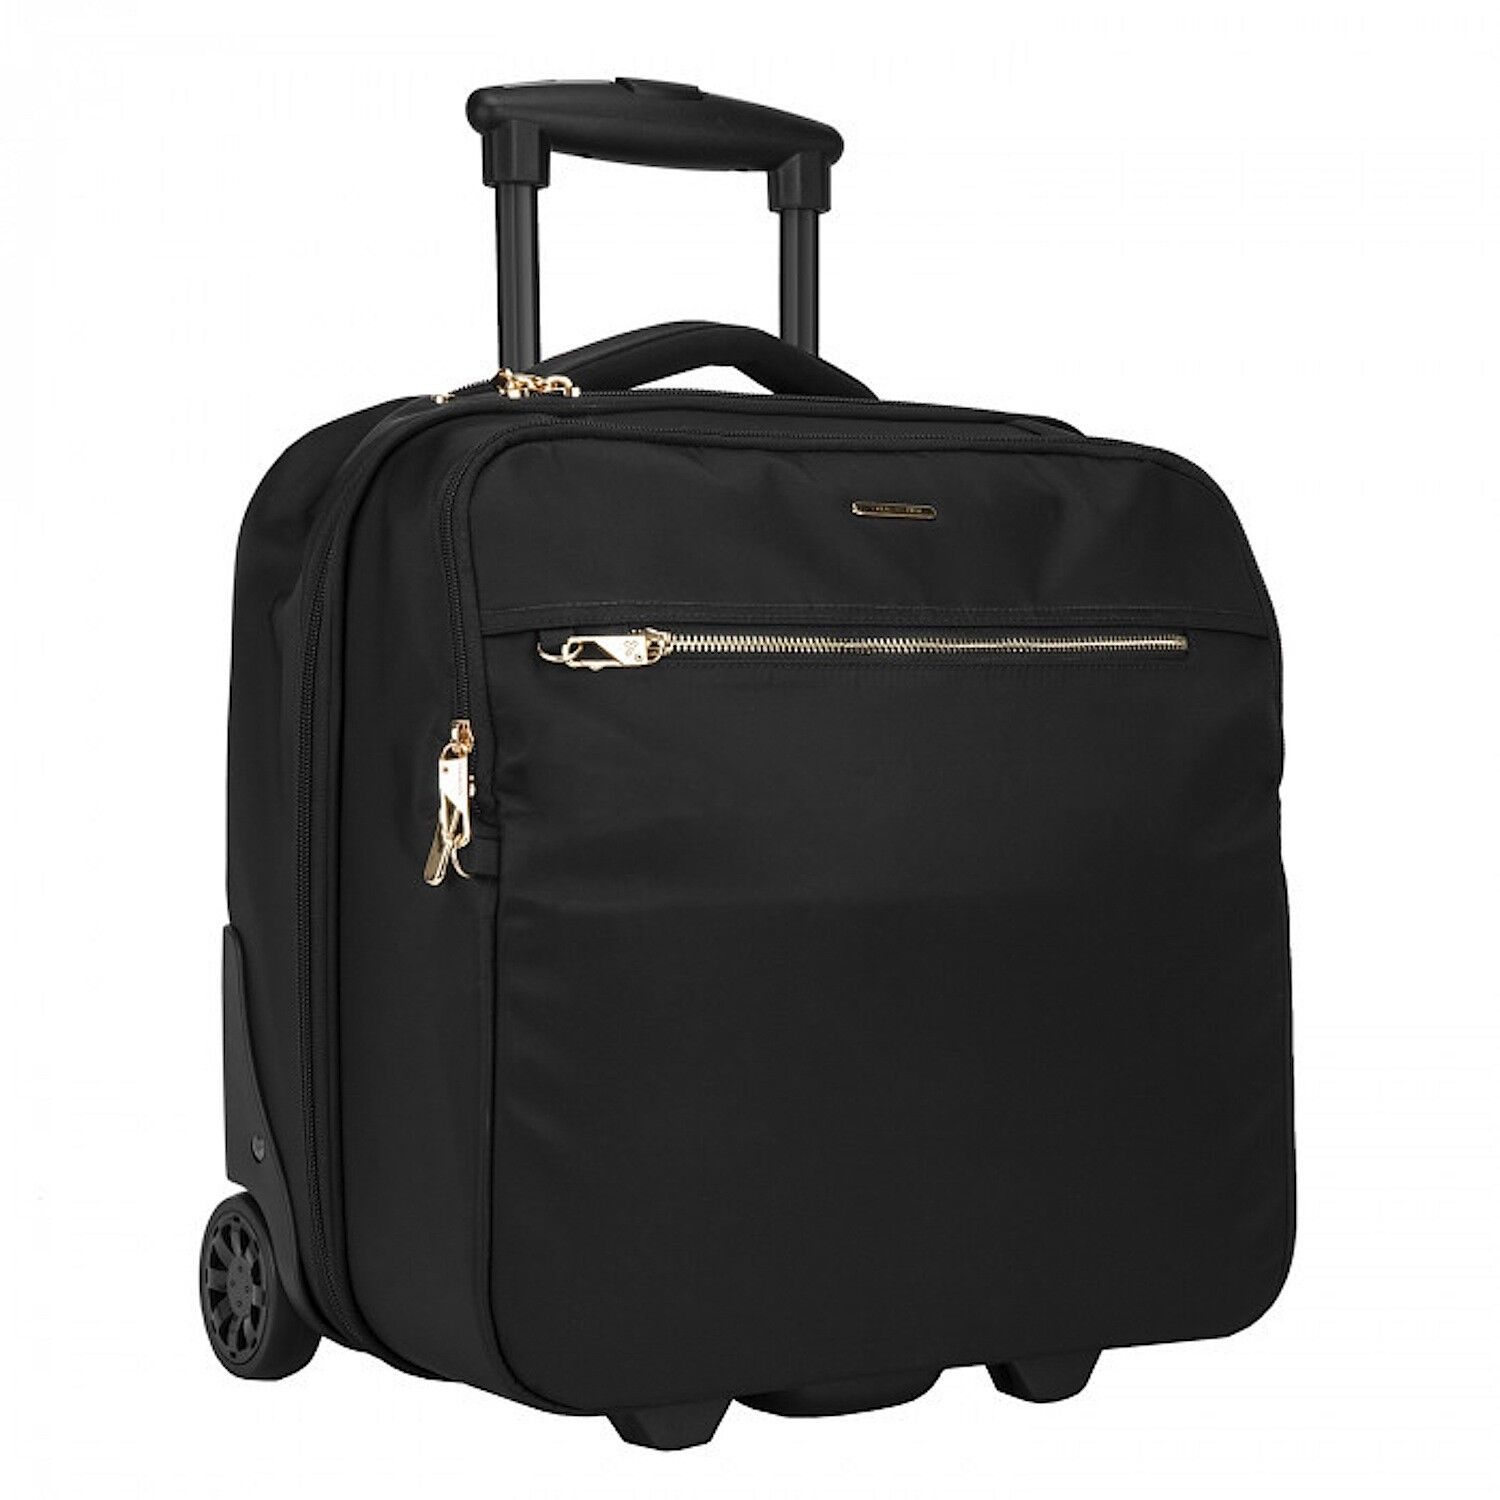 TRAVELON ANTI-THEFT TAILORED WHEELED UNDERSEAT CARRY-ON SPIN